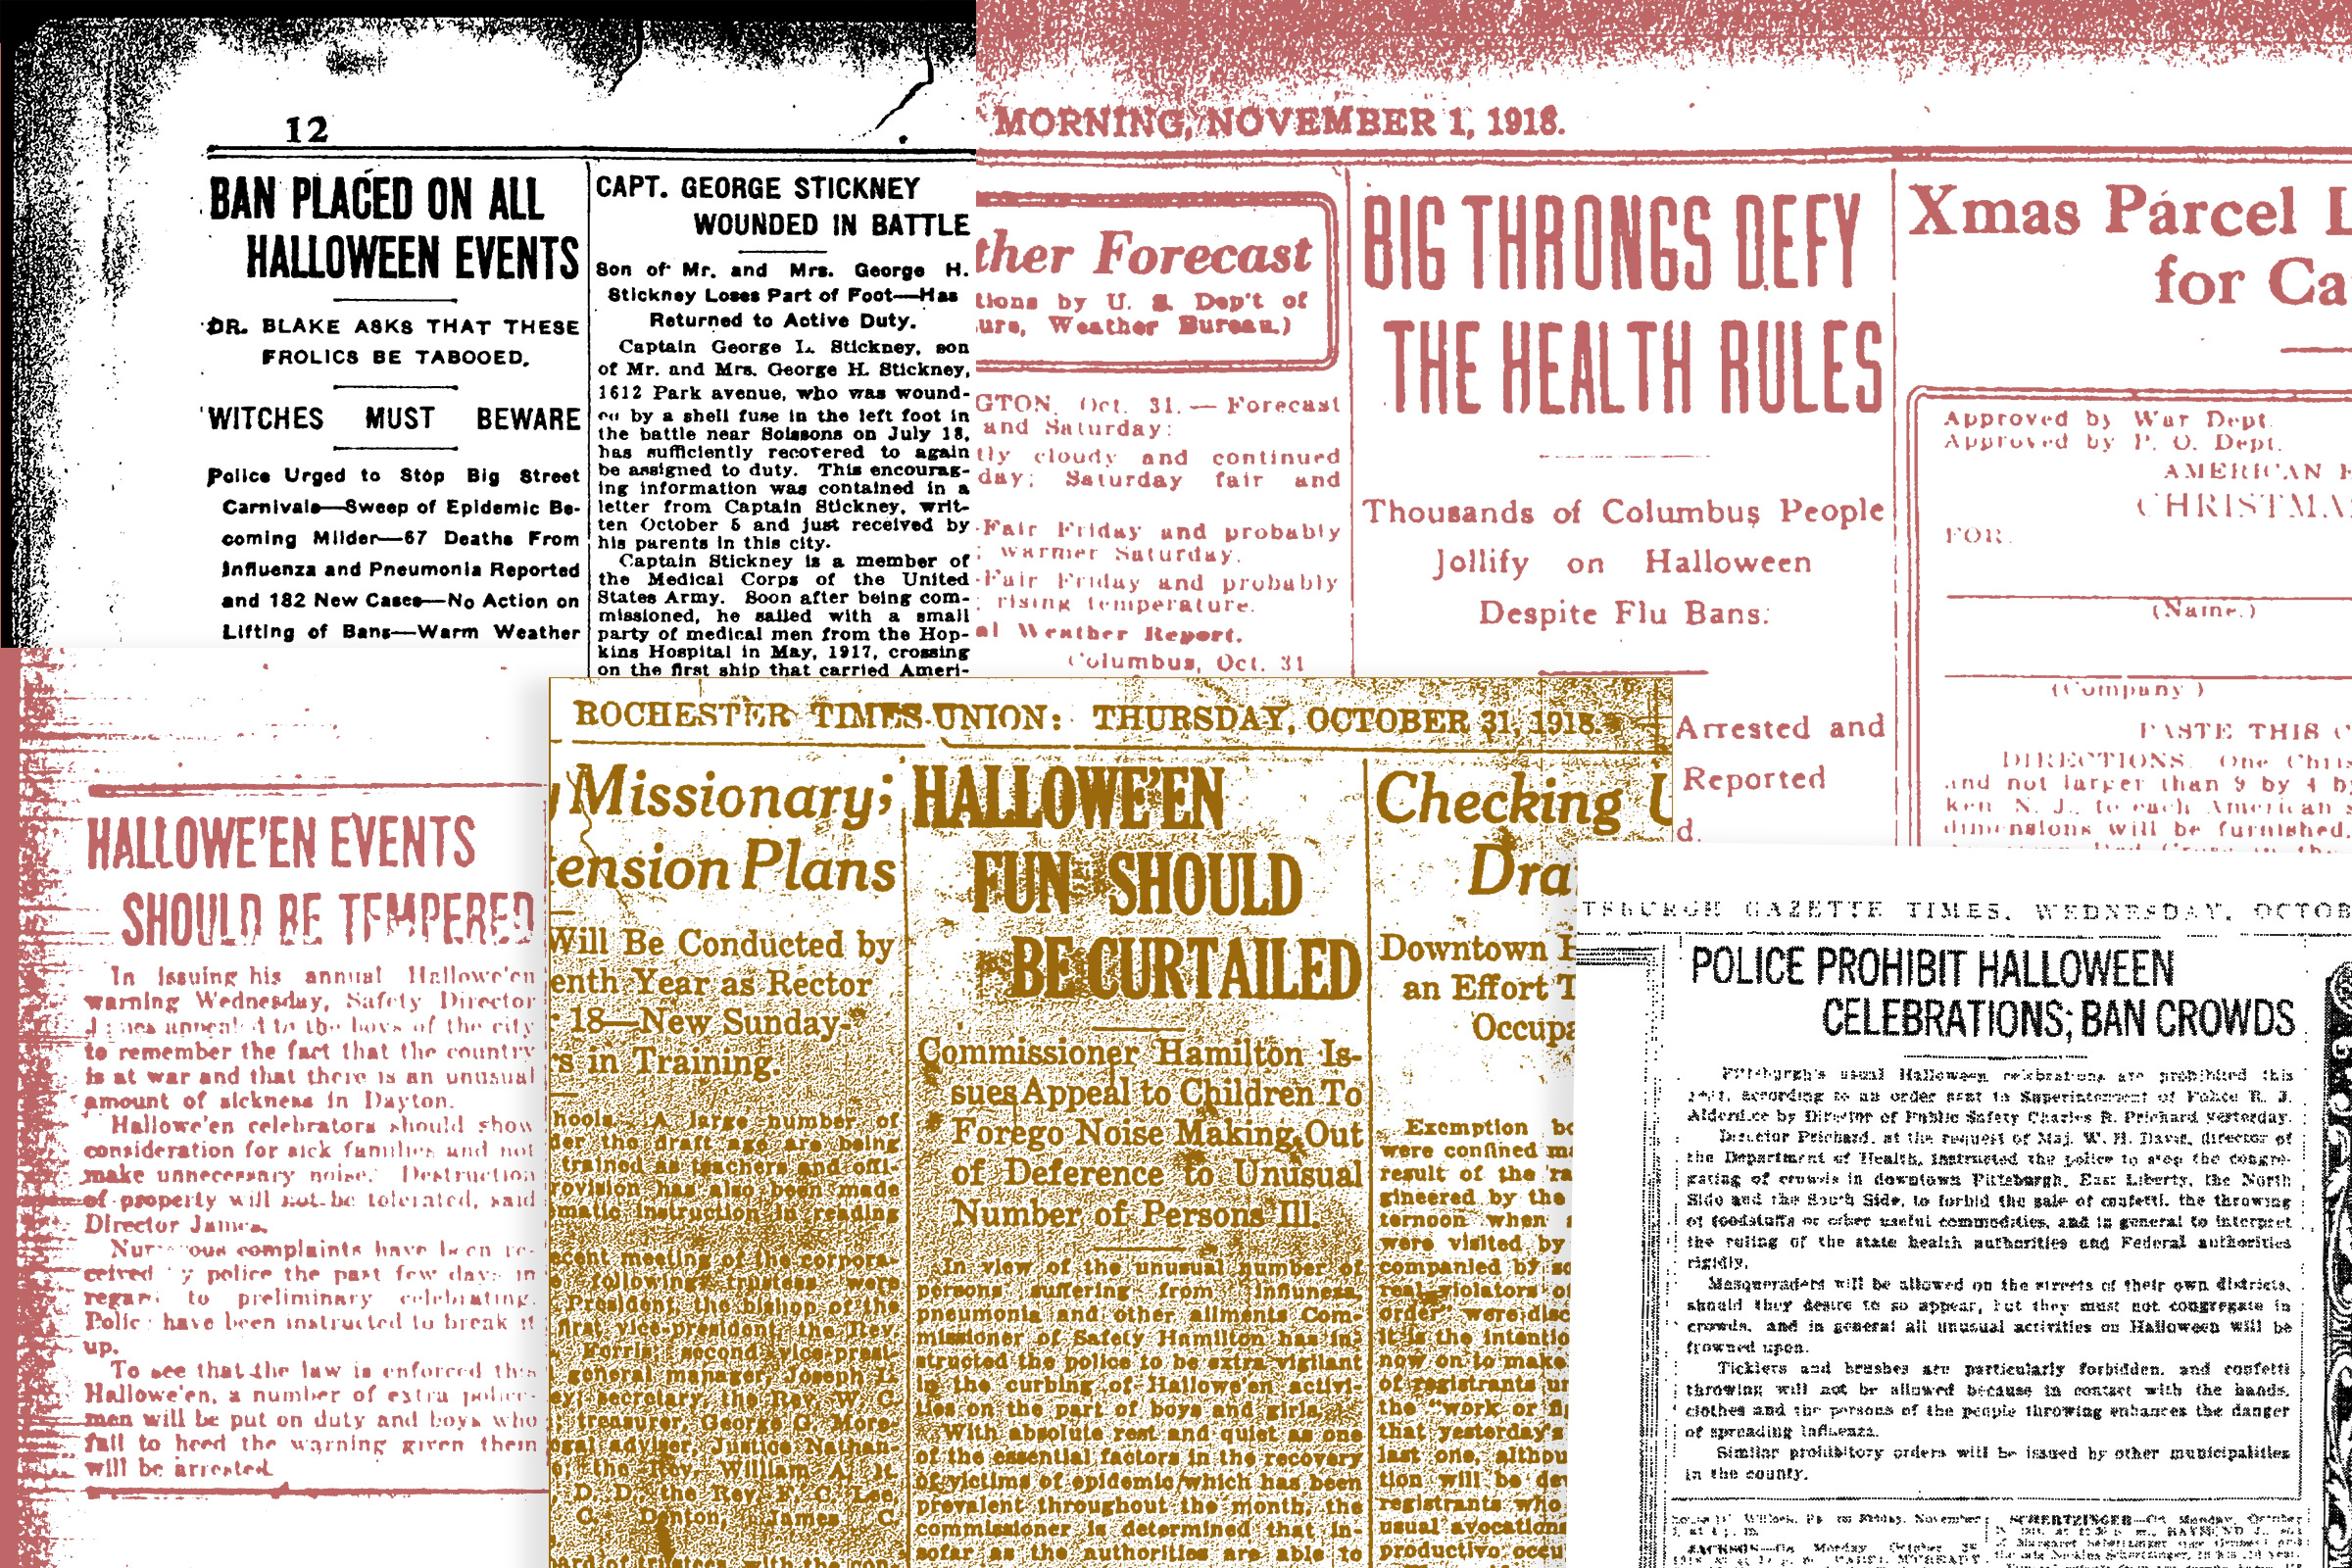 Newspaper headlines about Halloween precautions, 1918